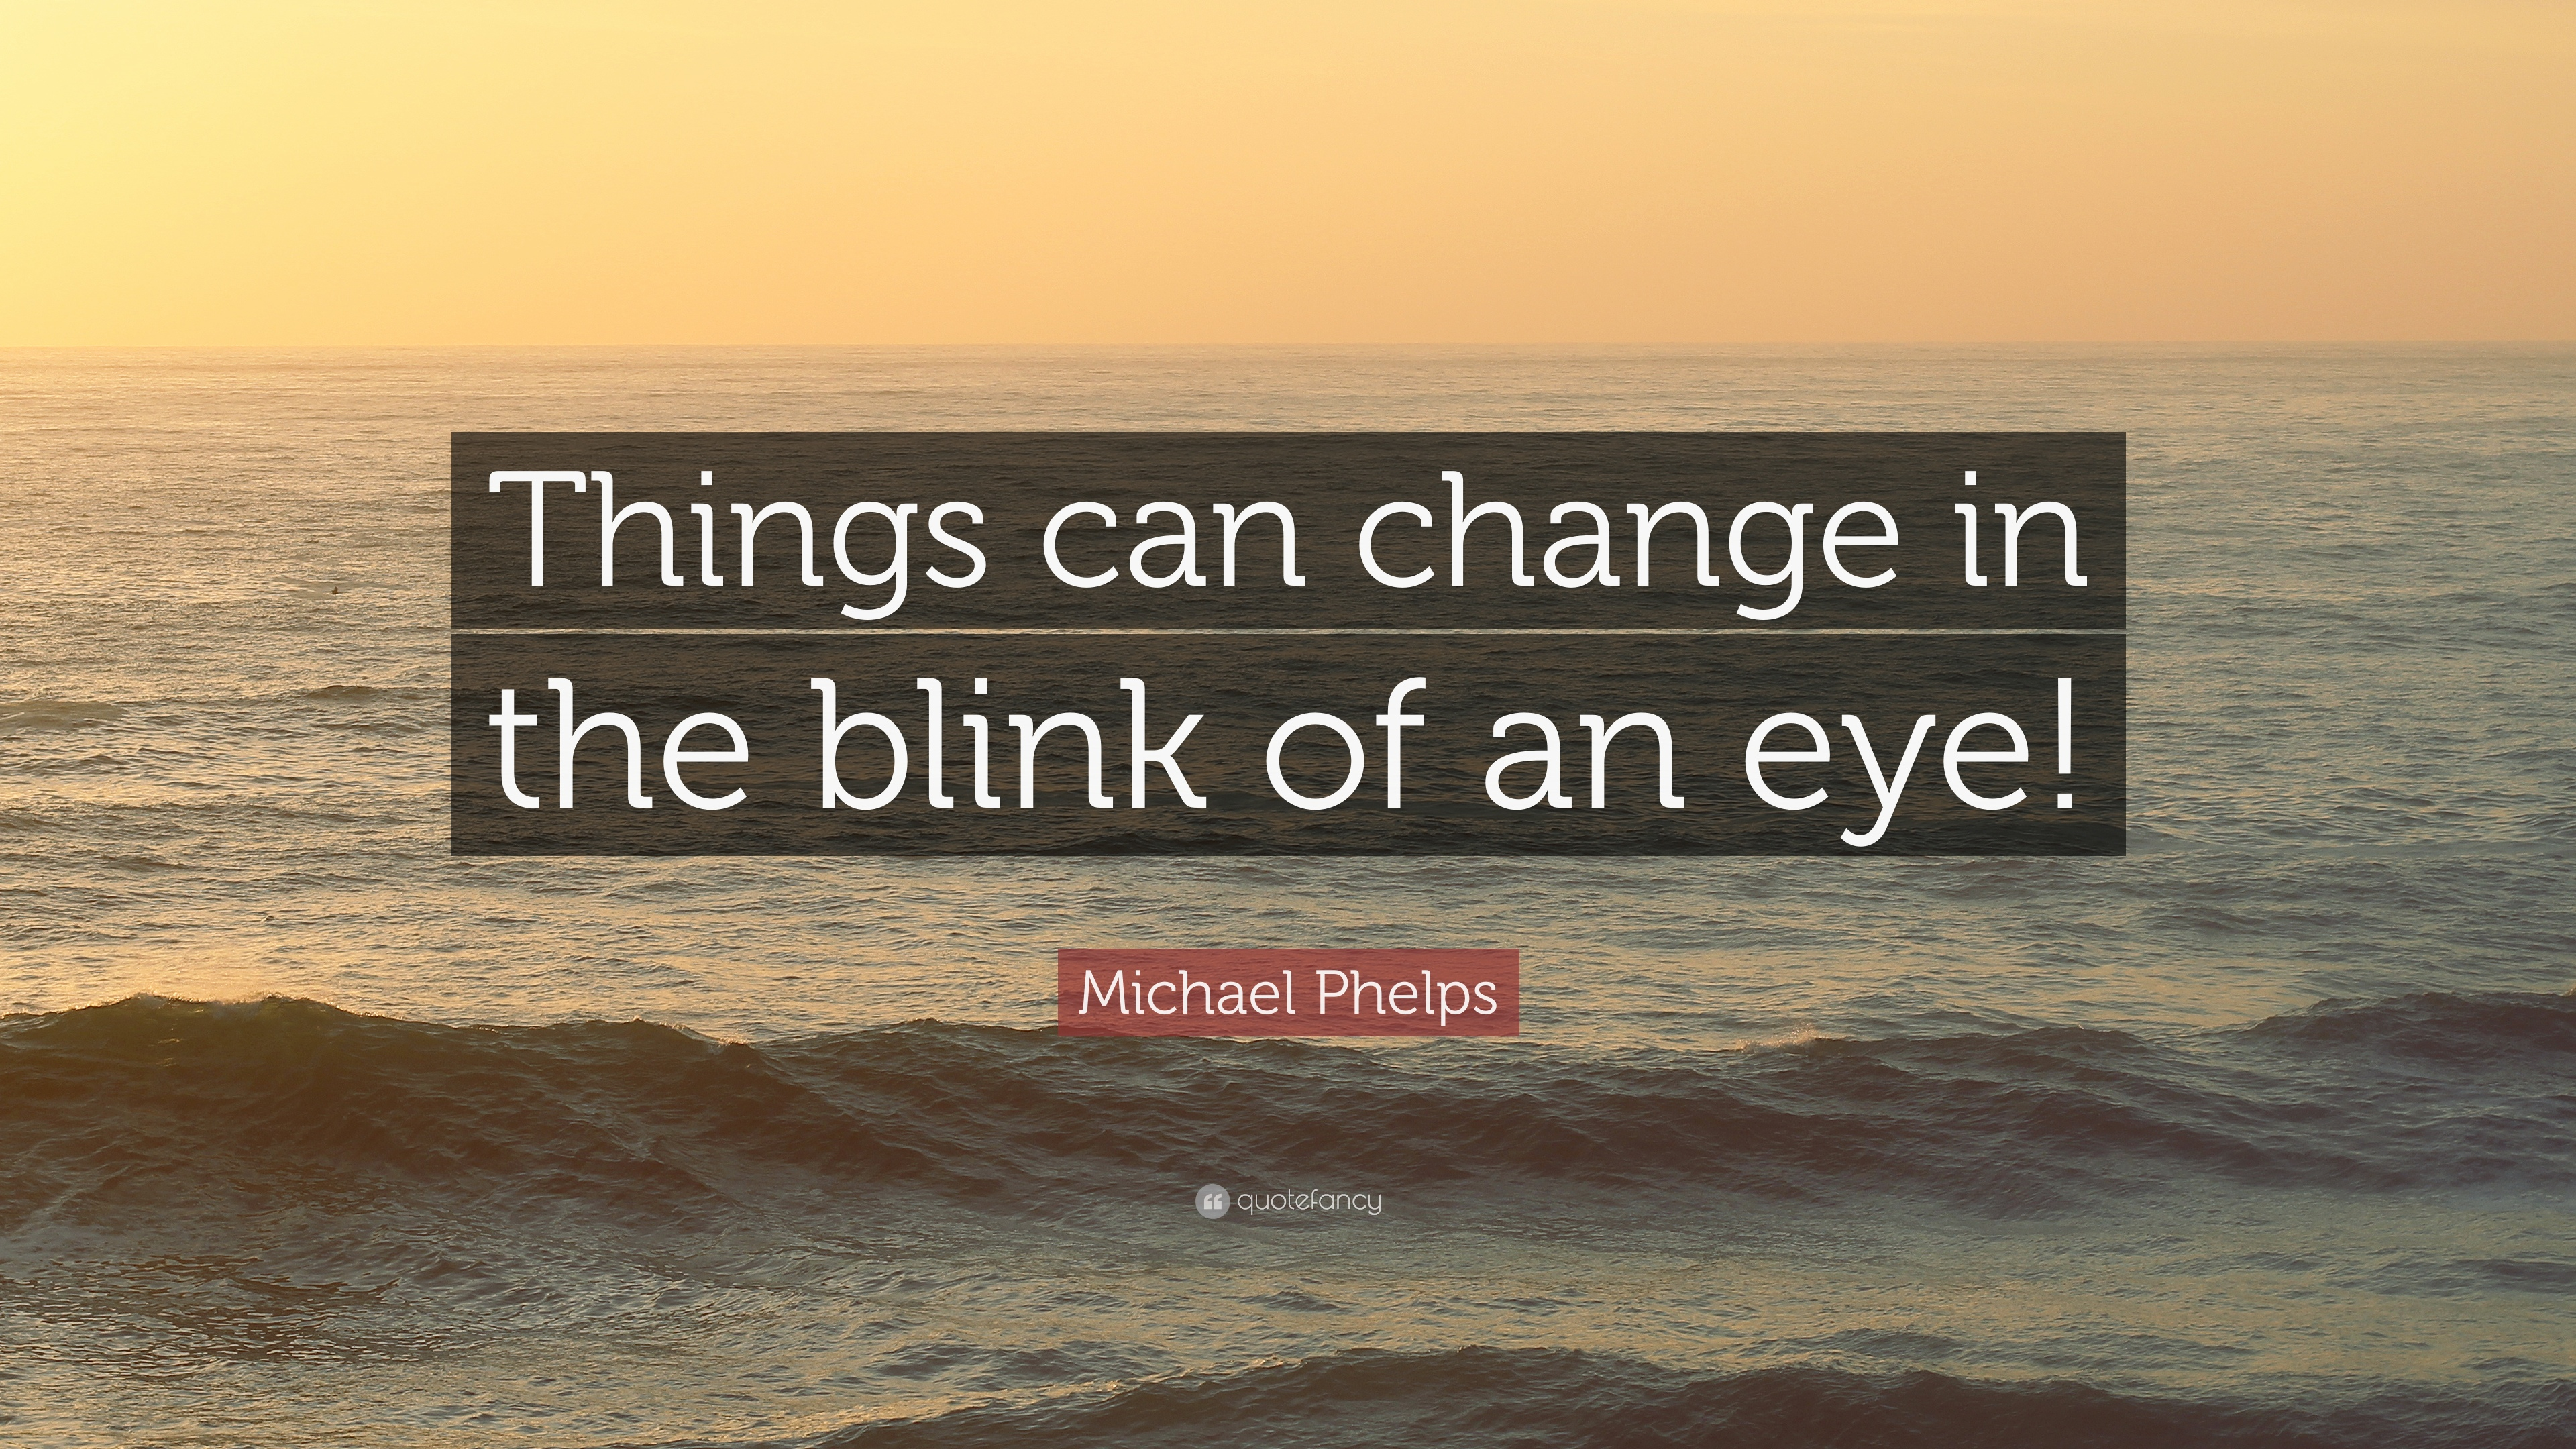 Michael Phelps Quote Things Can Change In The Blink Of An Eye